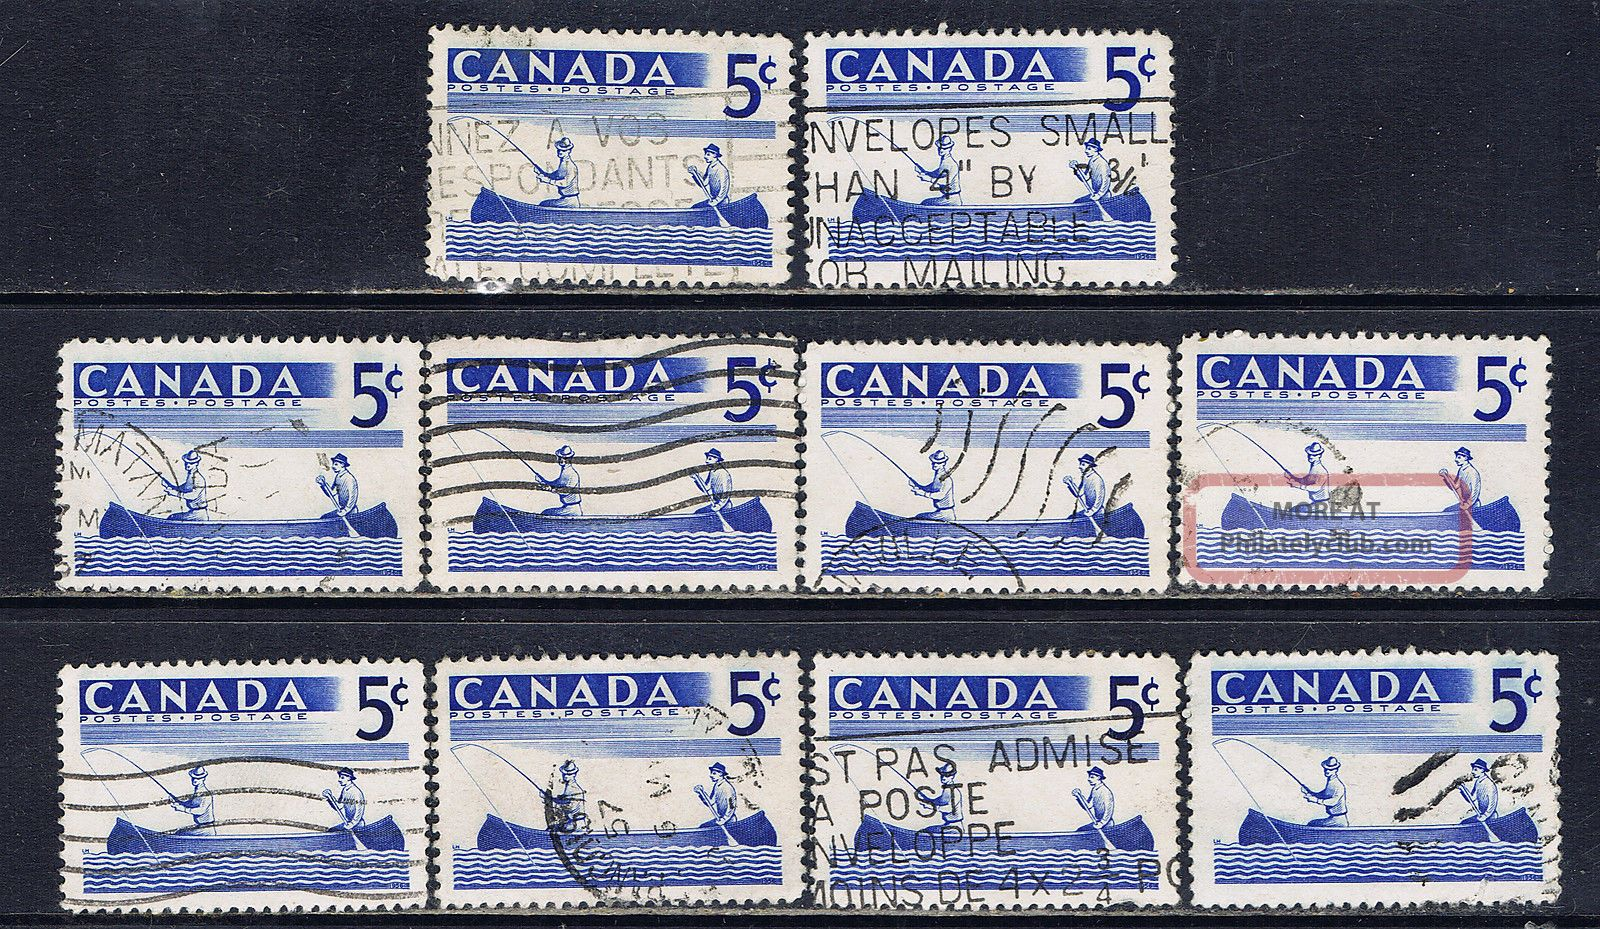 Canada 365 (9) 1957 5 Cent Blue Recreation Sports - Fishing 10 Canada photo